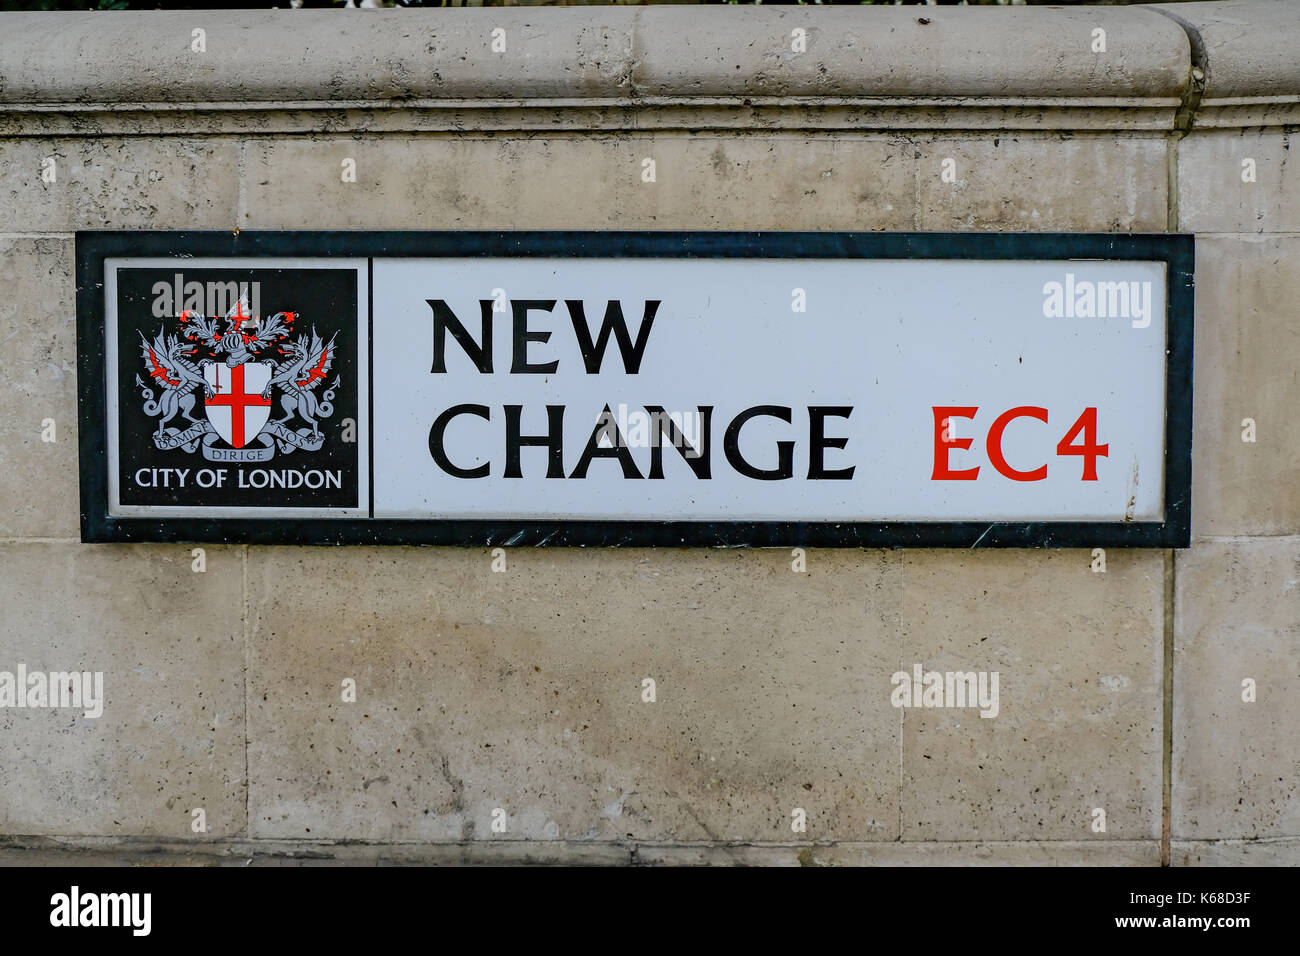 London, UK - August 3, 2017:  Street sign for New Change EC4.  Horizontal shot of this street name. - Stock Image